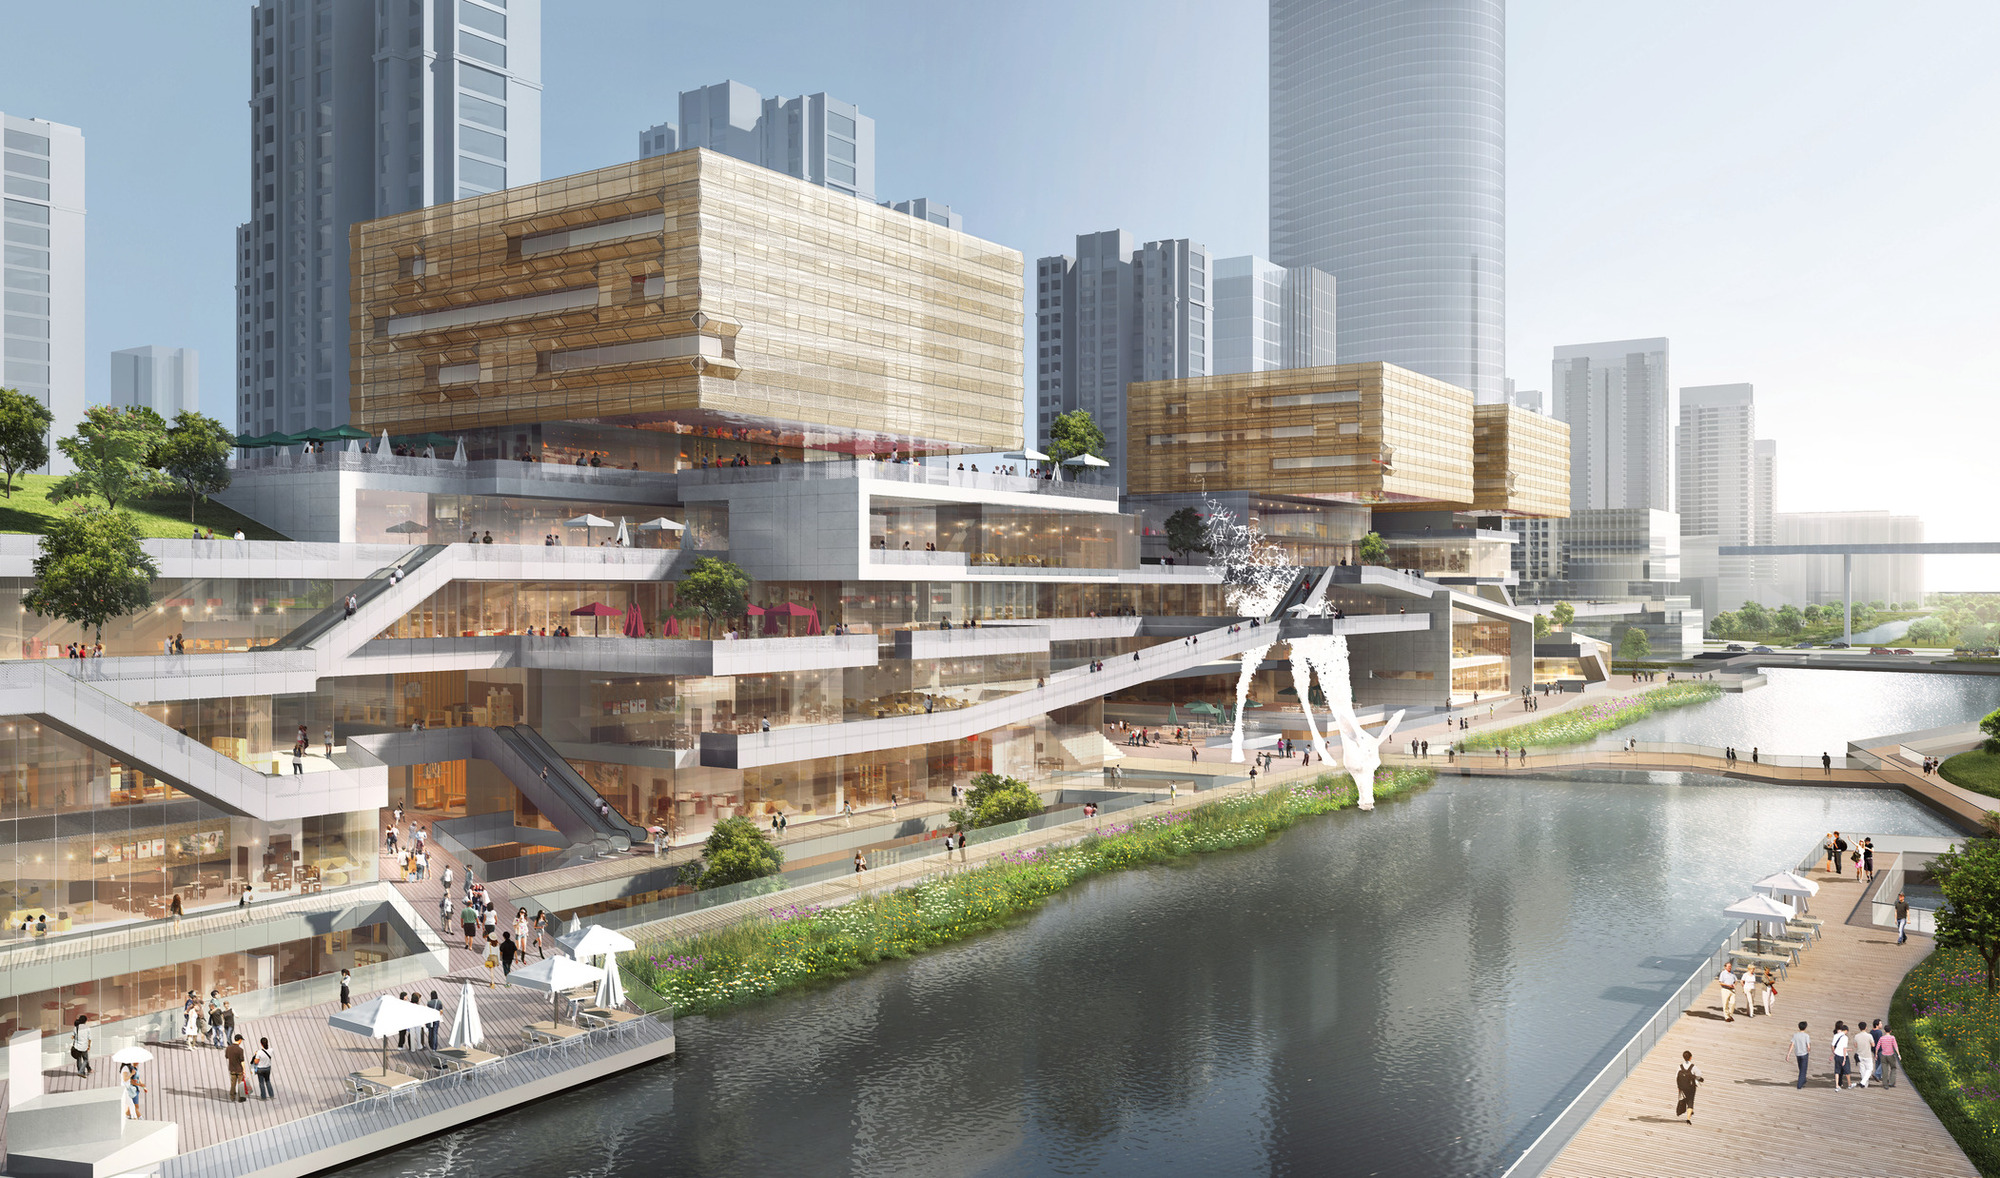 Benoy Releases Images of New Waterfront Development in Wenzhou, China